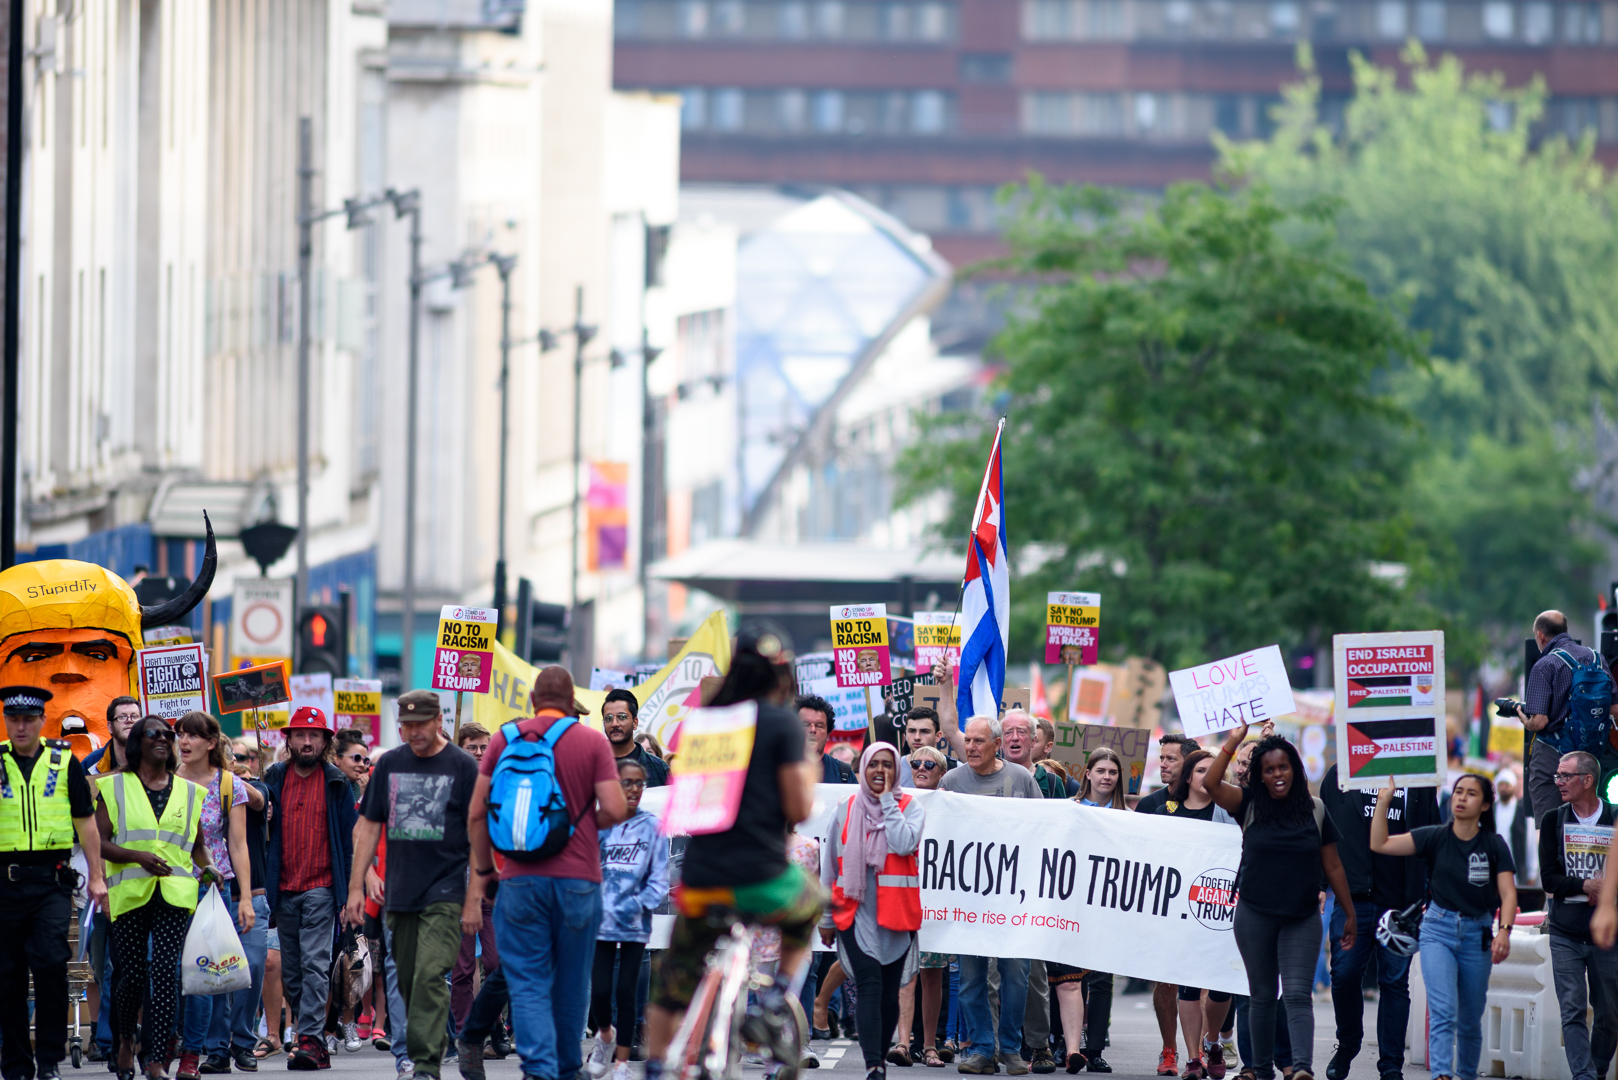 Sheffield Anti-Trump rally July 2018 Blog36.jpg